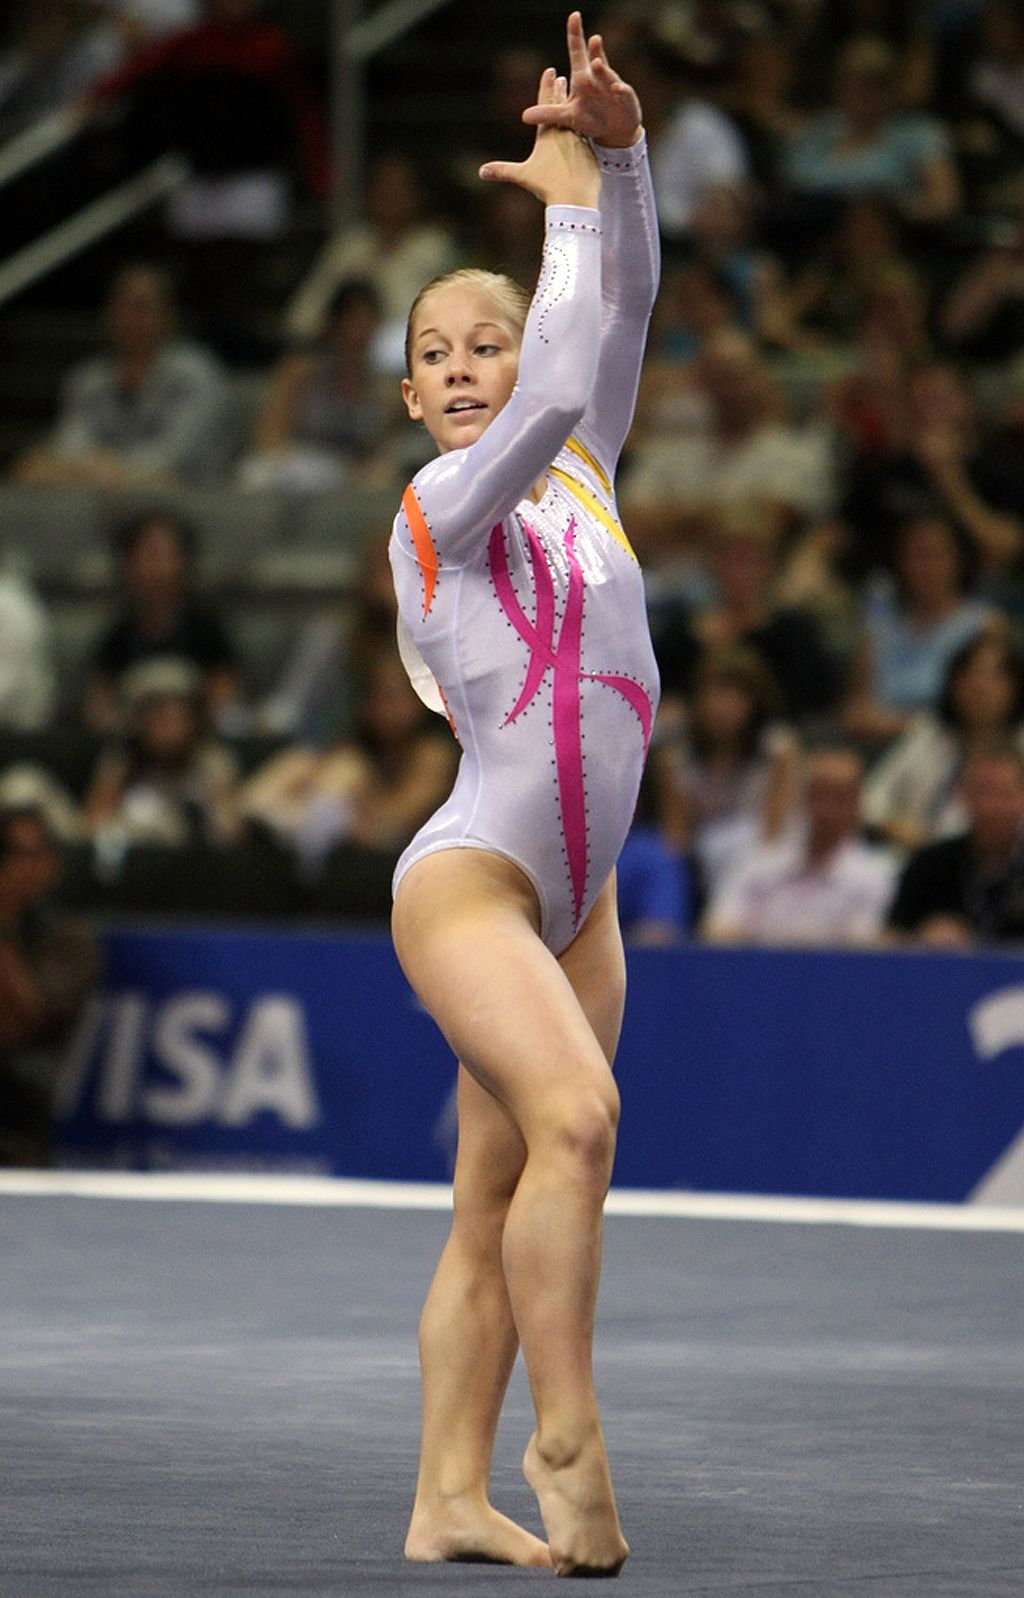 shawn johnson floor 2008shawn johnson gymnast, shawn johnson derek hough, shawn johnson floor music, shawn johnson floor 2008, shawn johnson comments in rio, shawn johnson dancing with the stars, shawn johnson age, shawn johnson balance beam, shawn johnson instagram, shawn johnson beam, shaun johnson rugby